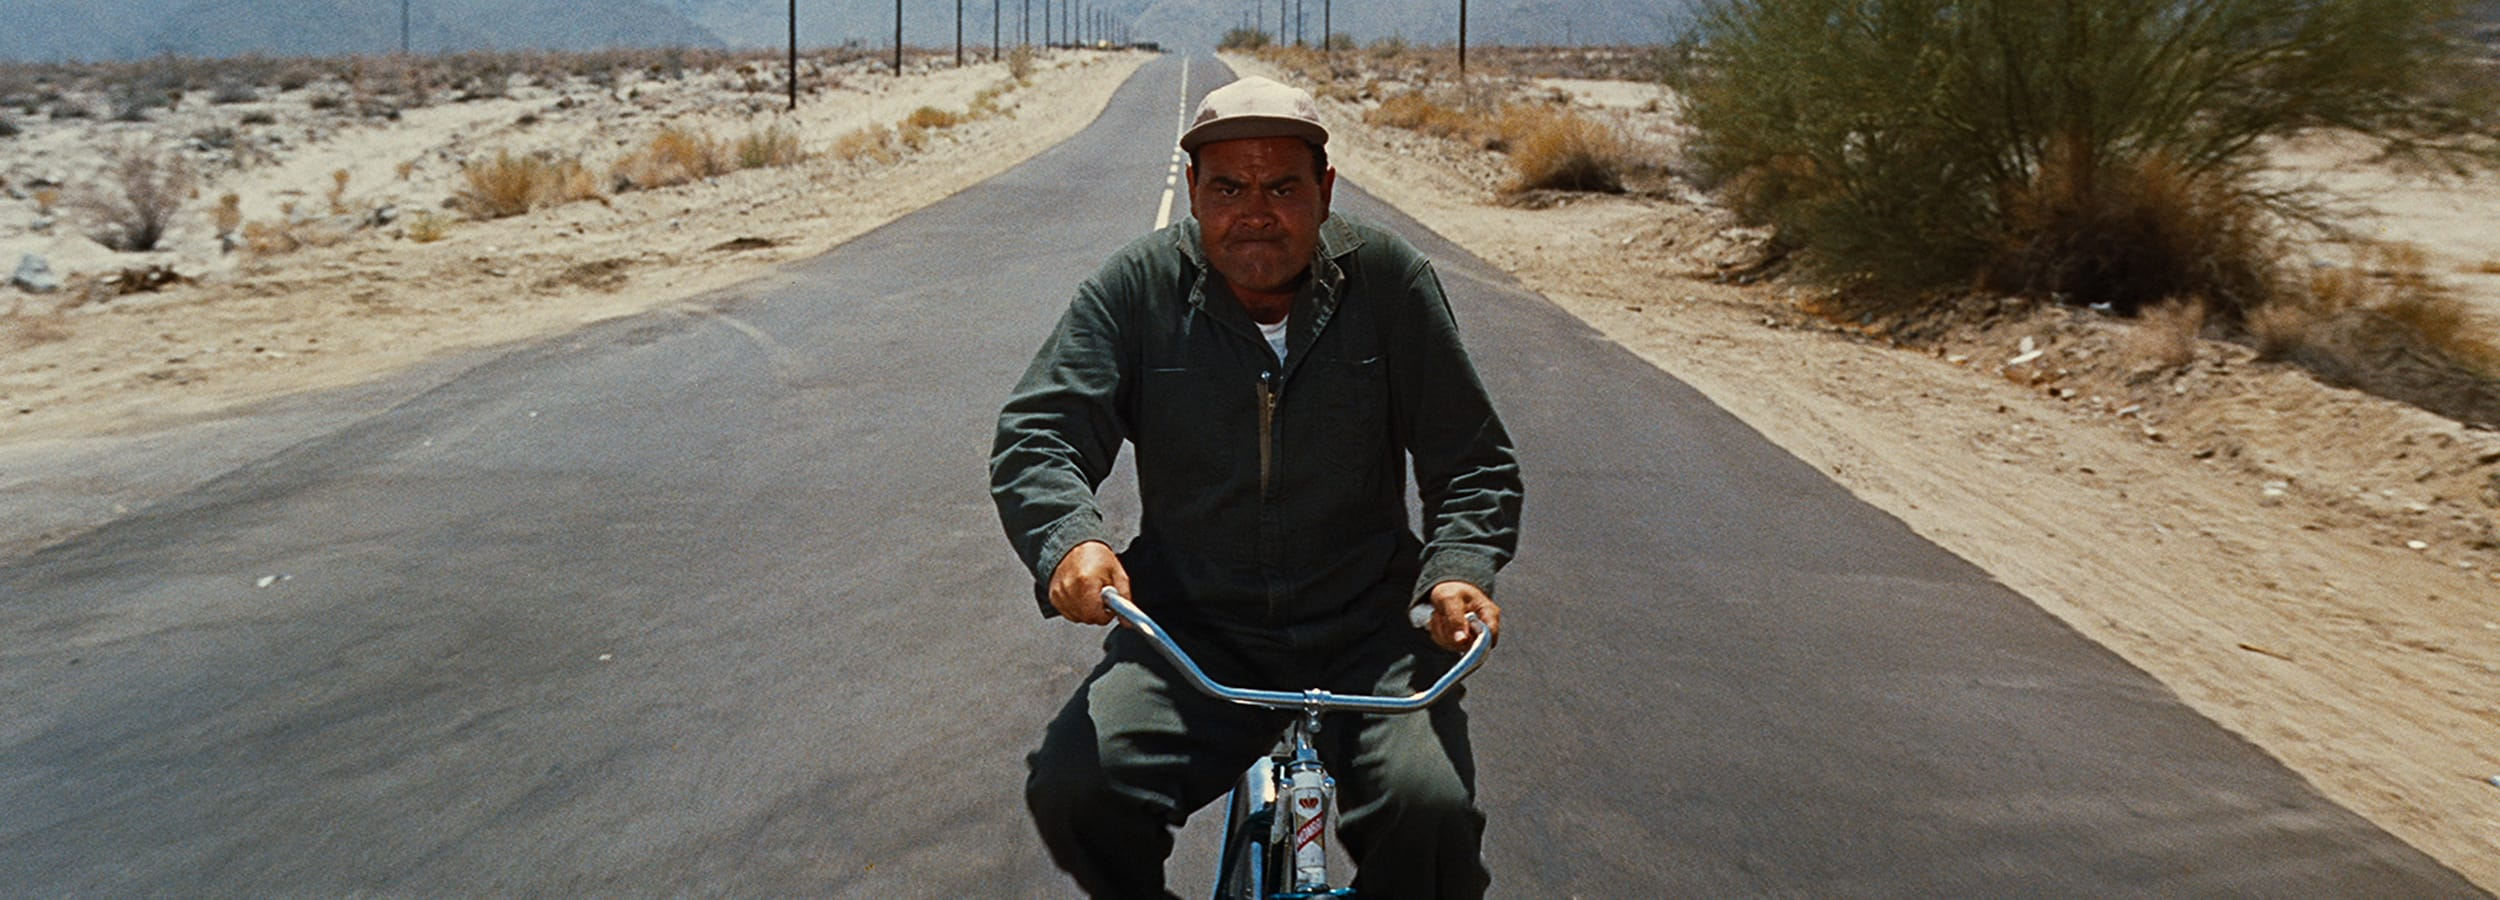 Image result for it's a mad mad world jonathan winters on bike